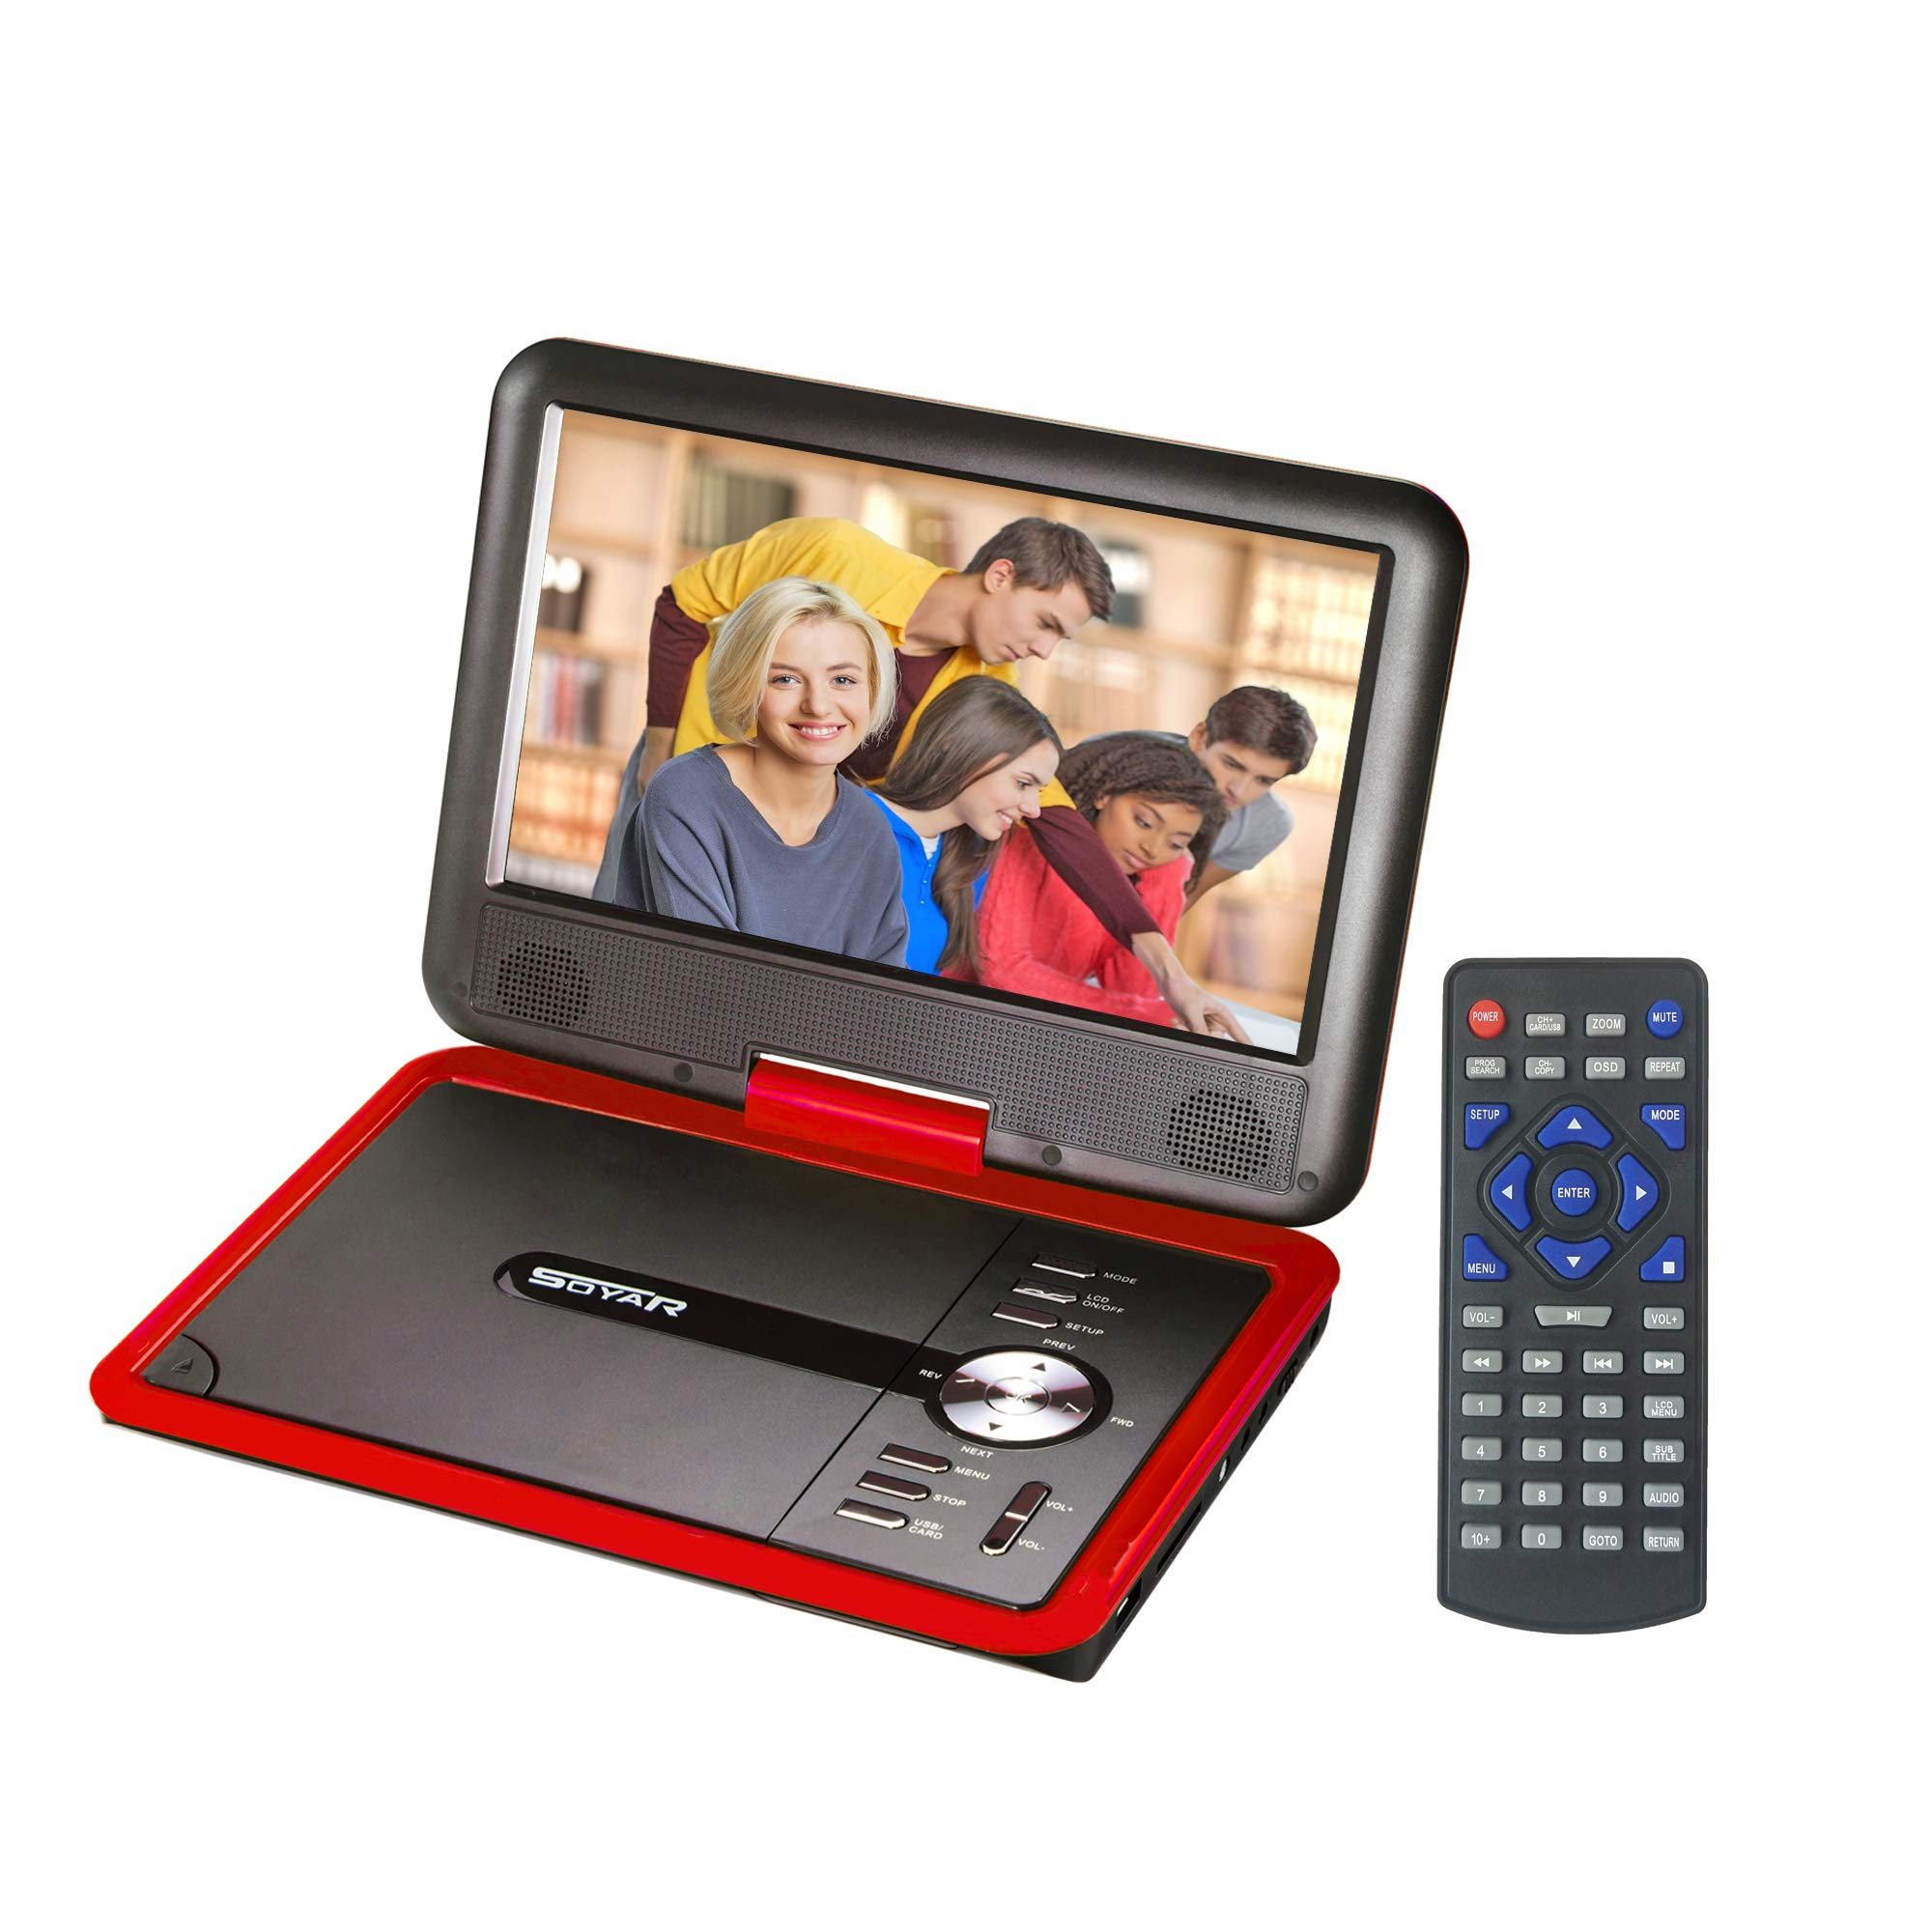 GJY 9.8 '' Portable DVD Players,Swivel Screen,Built-in Rechargeable Battery,Support USB/SD/Game/MP3,Full Function Remote (Red)